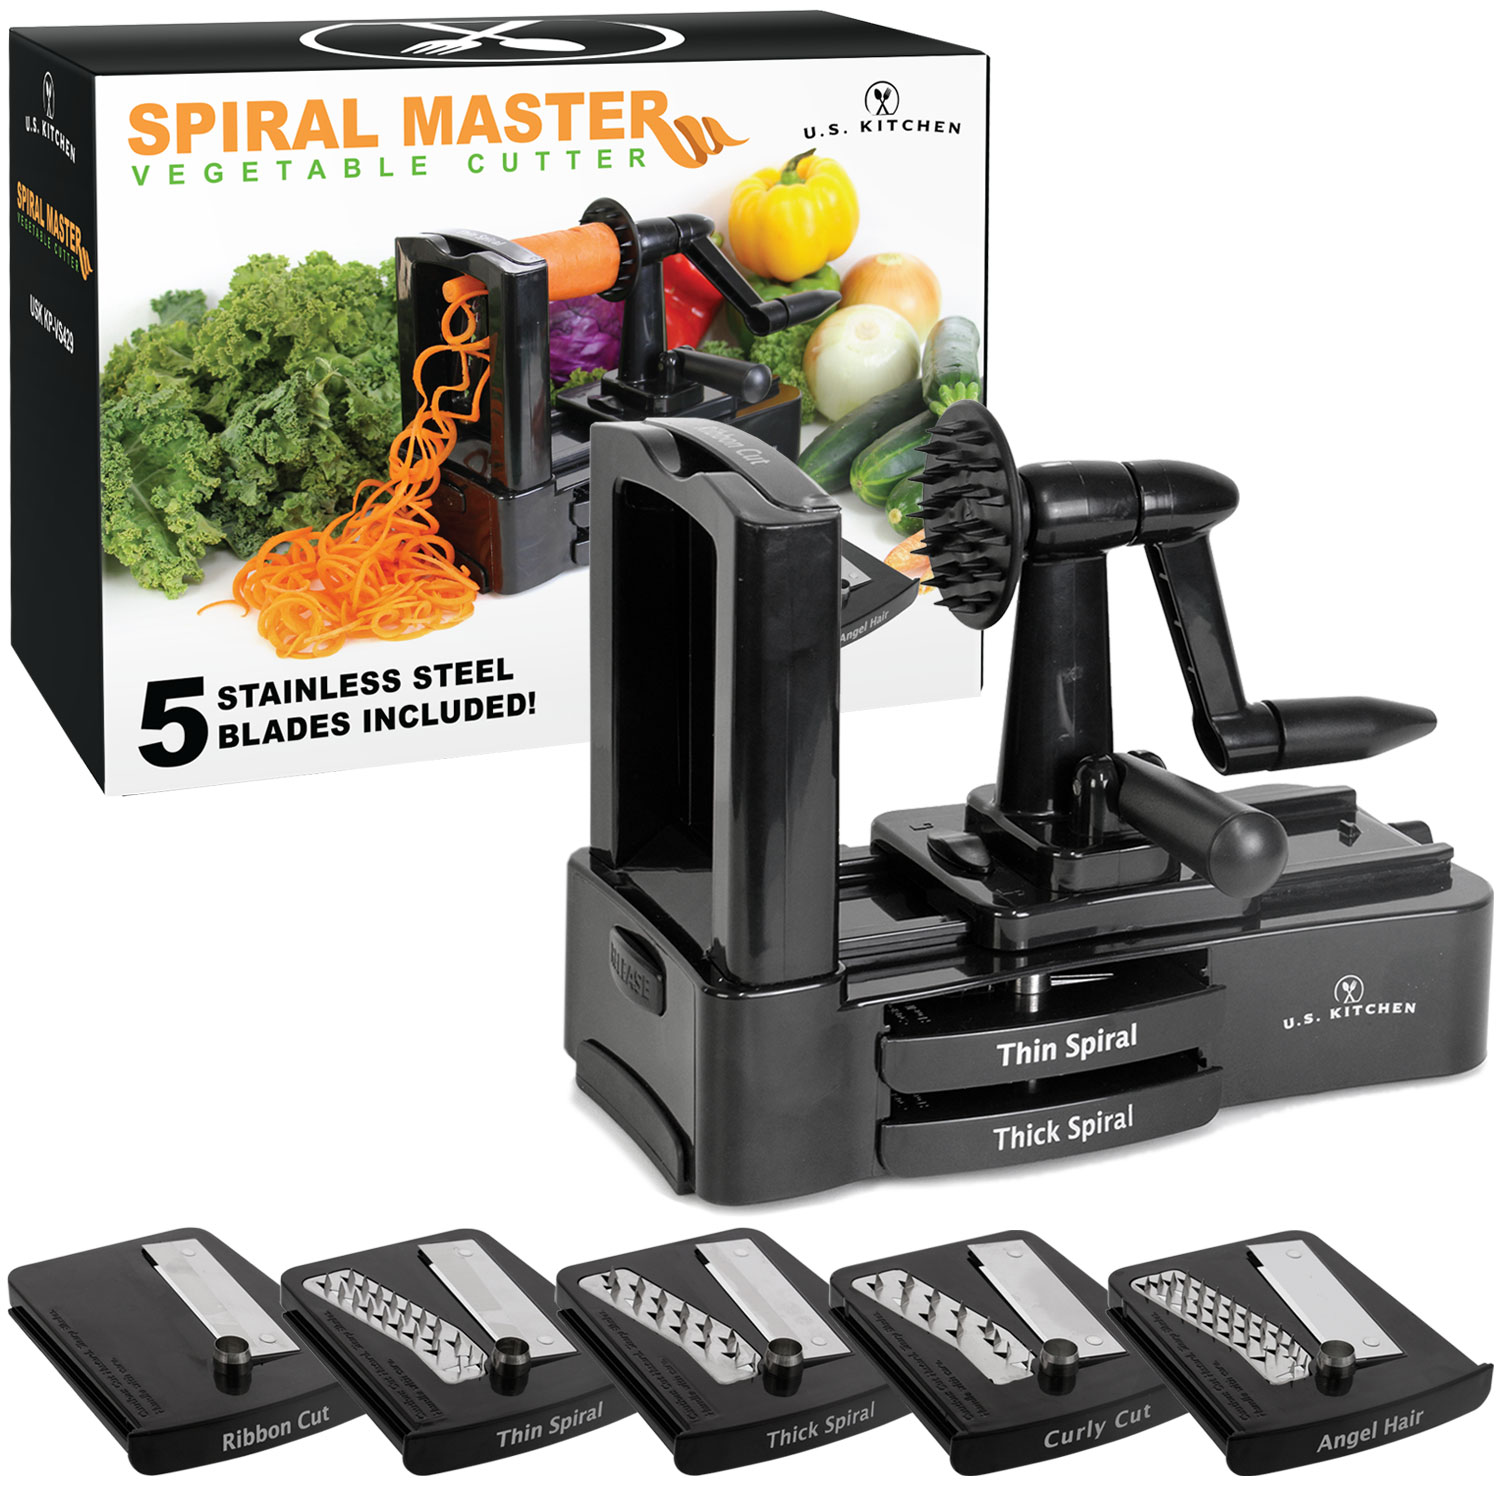 U.S. Kitchen Supply Spiral Master Vegetable Cutter   Stainless Steel  Spiral, Ribbon, Thin, Thick, Curly And Angel Blades   Walmart.com